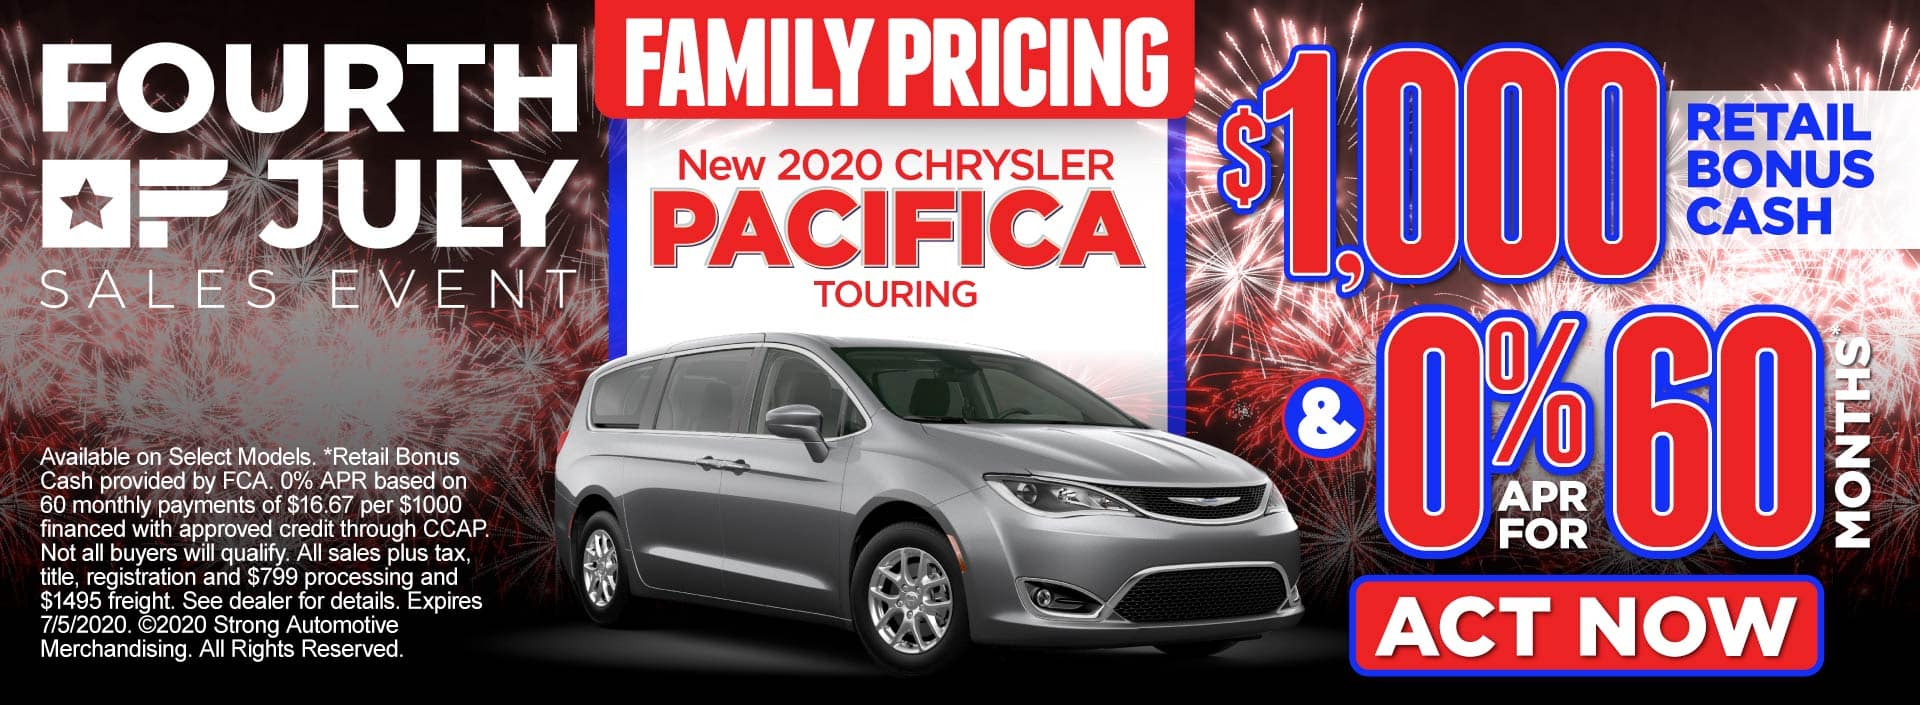 Family Pricing on the New 2020 Chrysler Pacifica - $1,000 retail bonus cash and 0% APR for 60 months* - Act Now